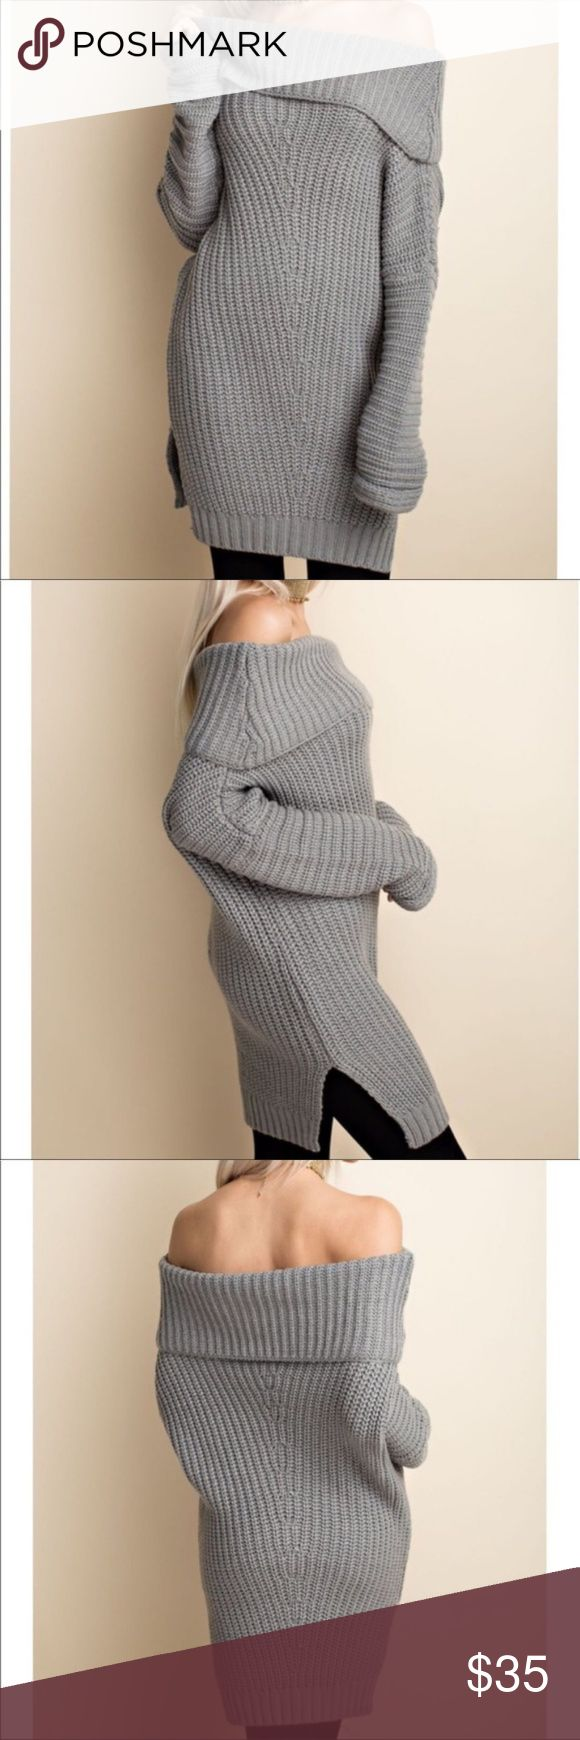 Best 25  Oversized cable knit sweater ideas on Pinterest | Jumper ...